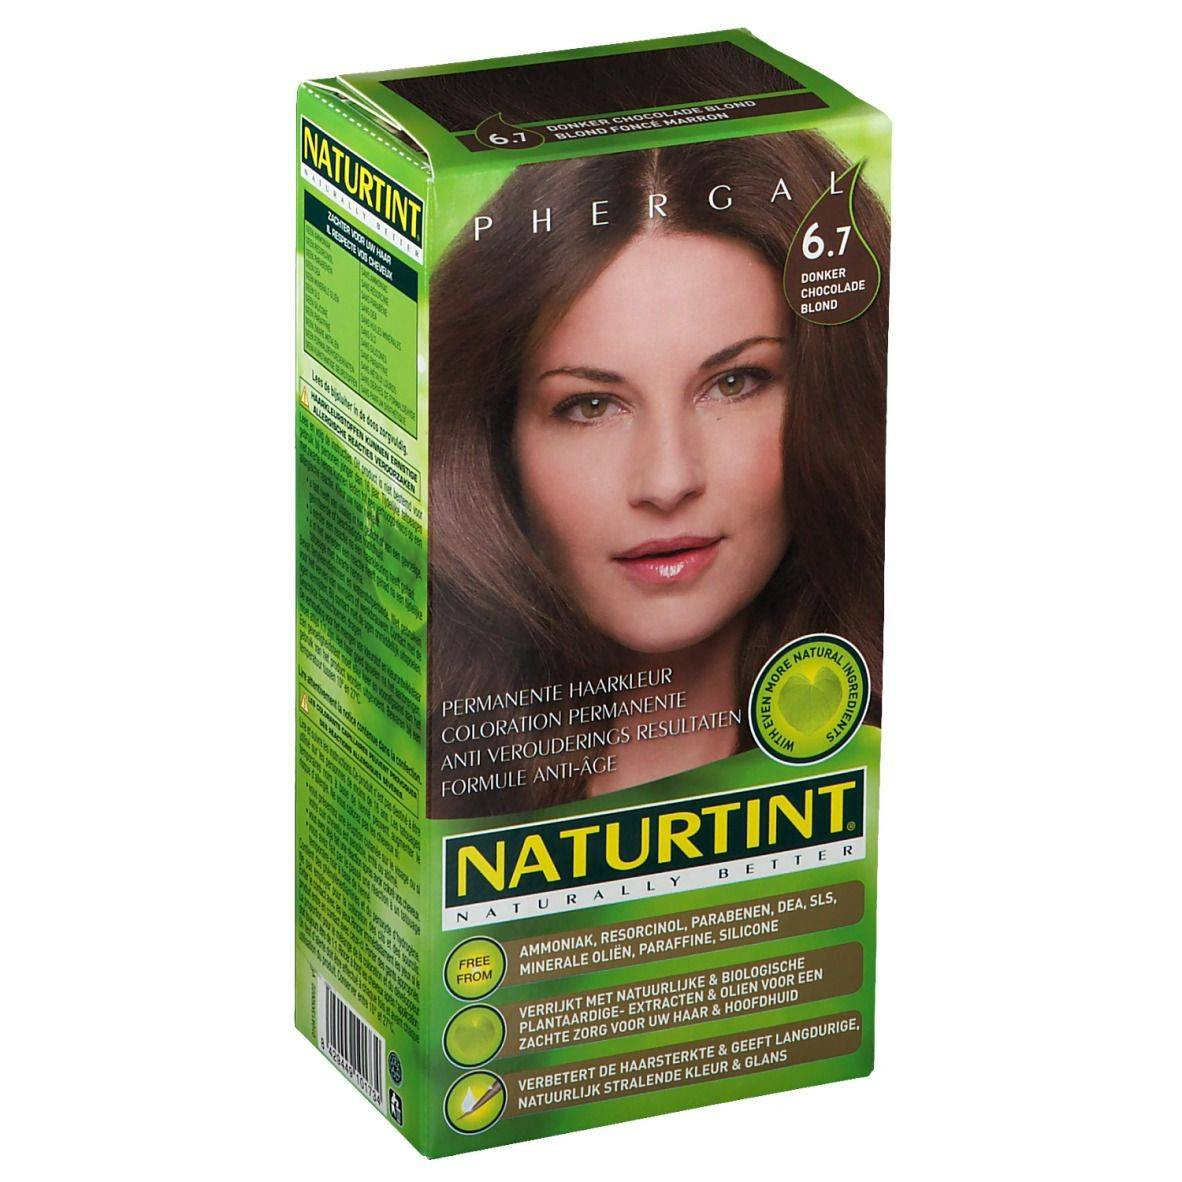 NATURTINT® Coloration Permanente 6.7 Chocolat Clair ml emballage(s) combi